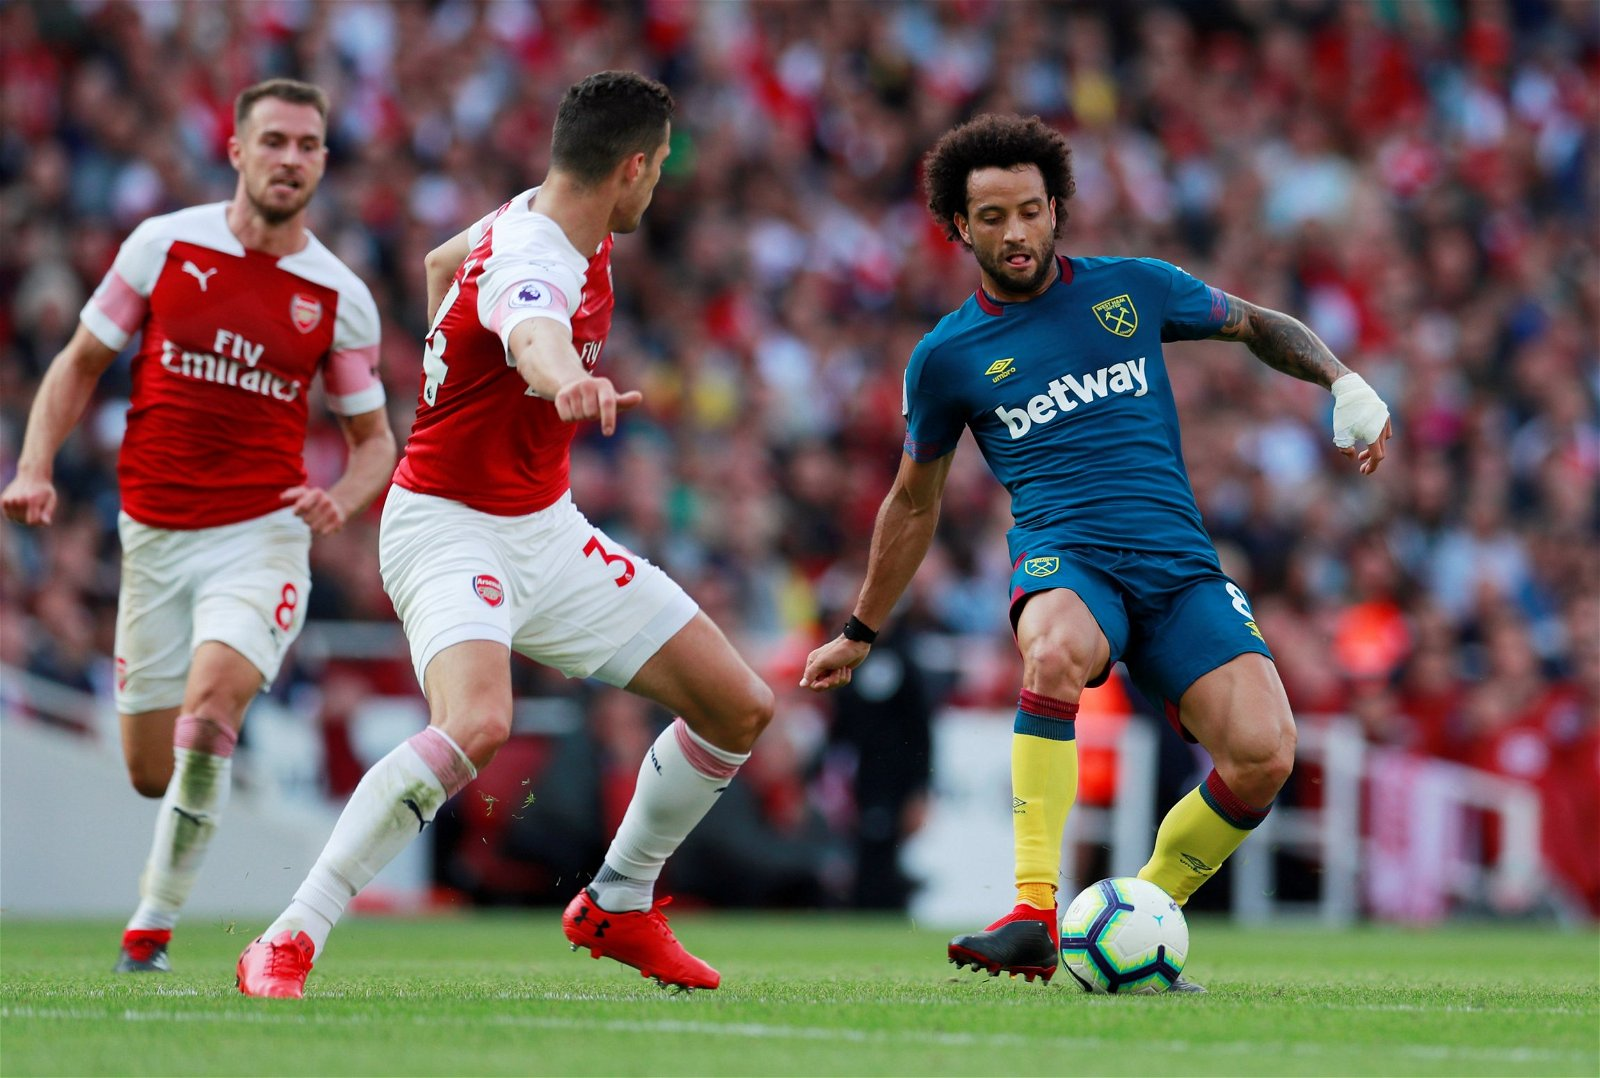 Anderson in action against Arsenal's Xhaka